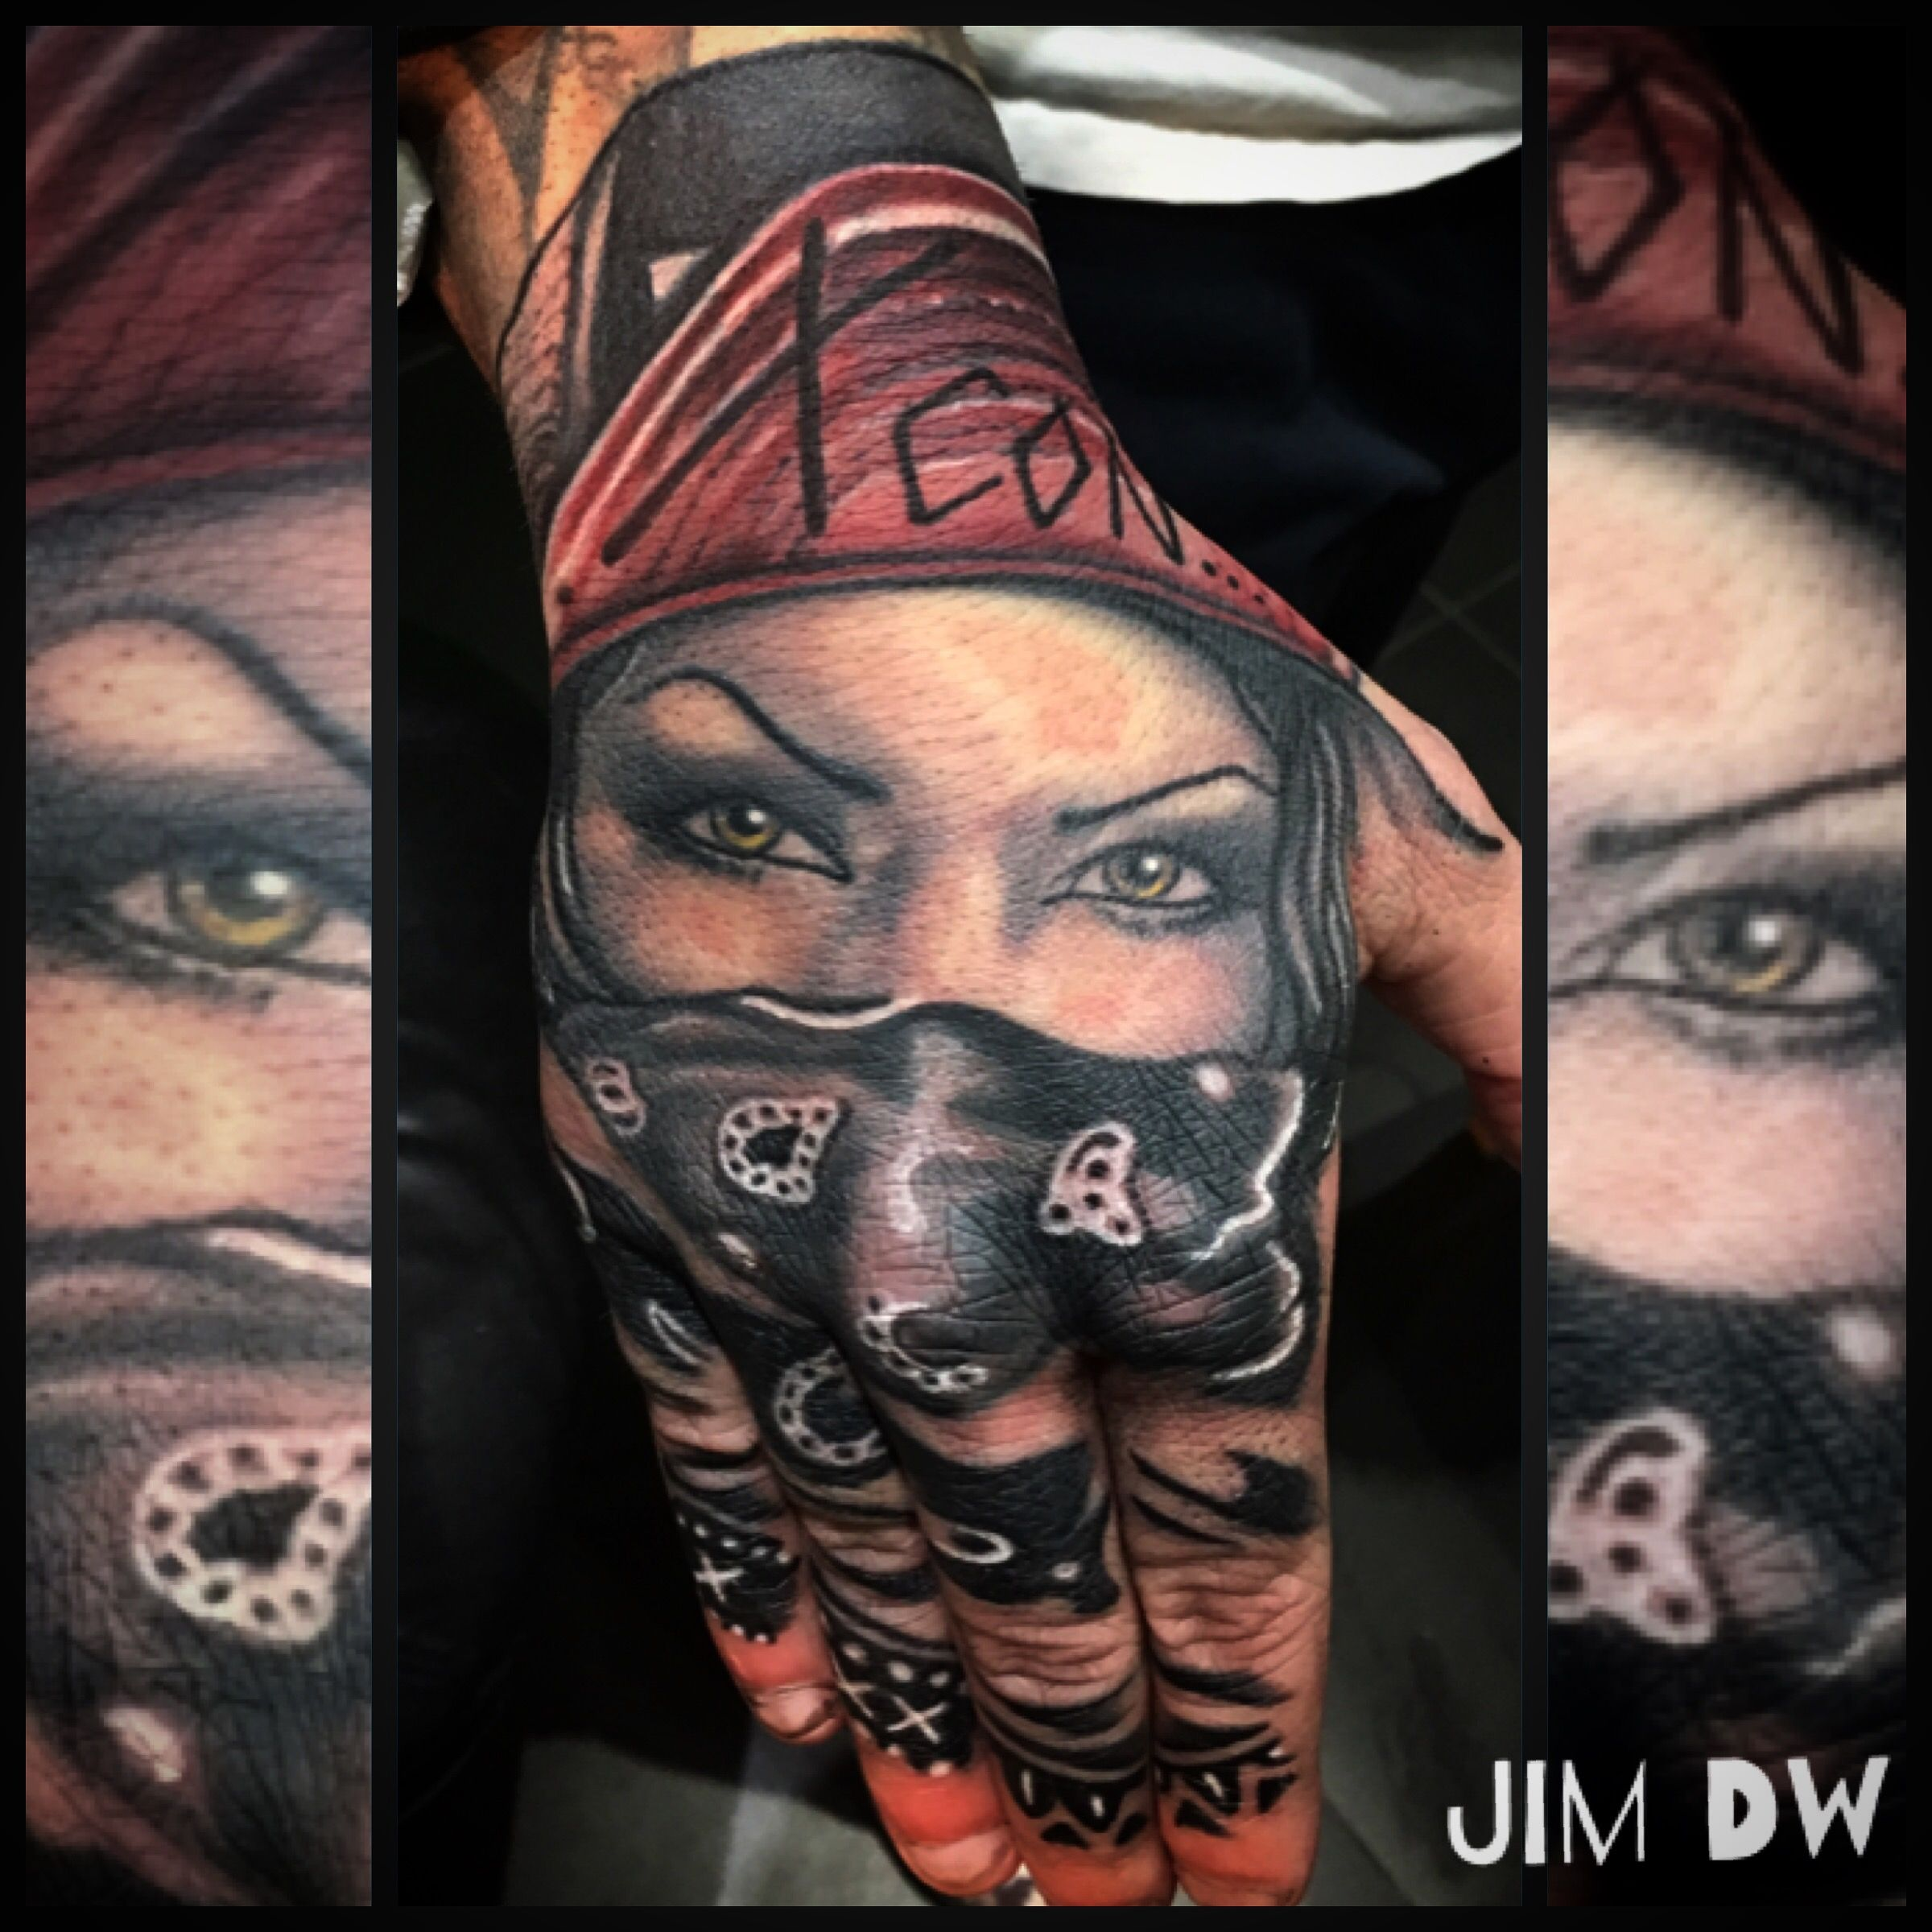 Chicano Hand Tattoo Handtattoo Of Gangster Girl Wearing Bandana Ink By Jim Dw Hand Tattoos Bandana Tattoo Badass Tattoos